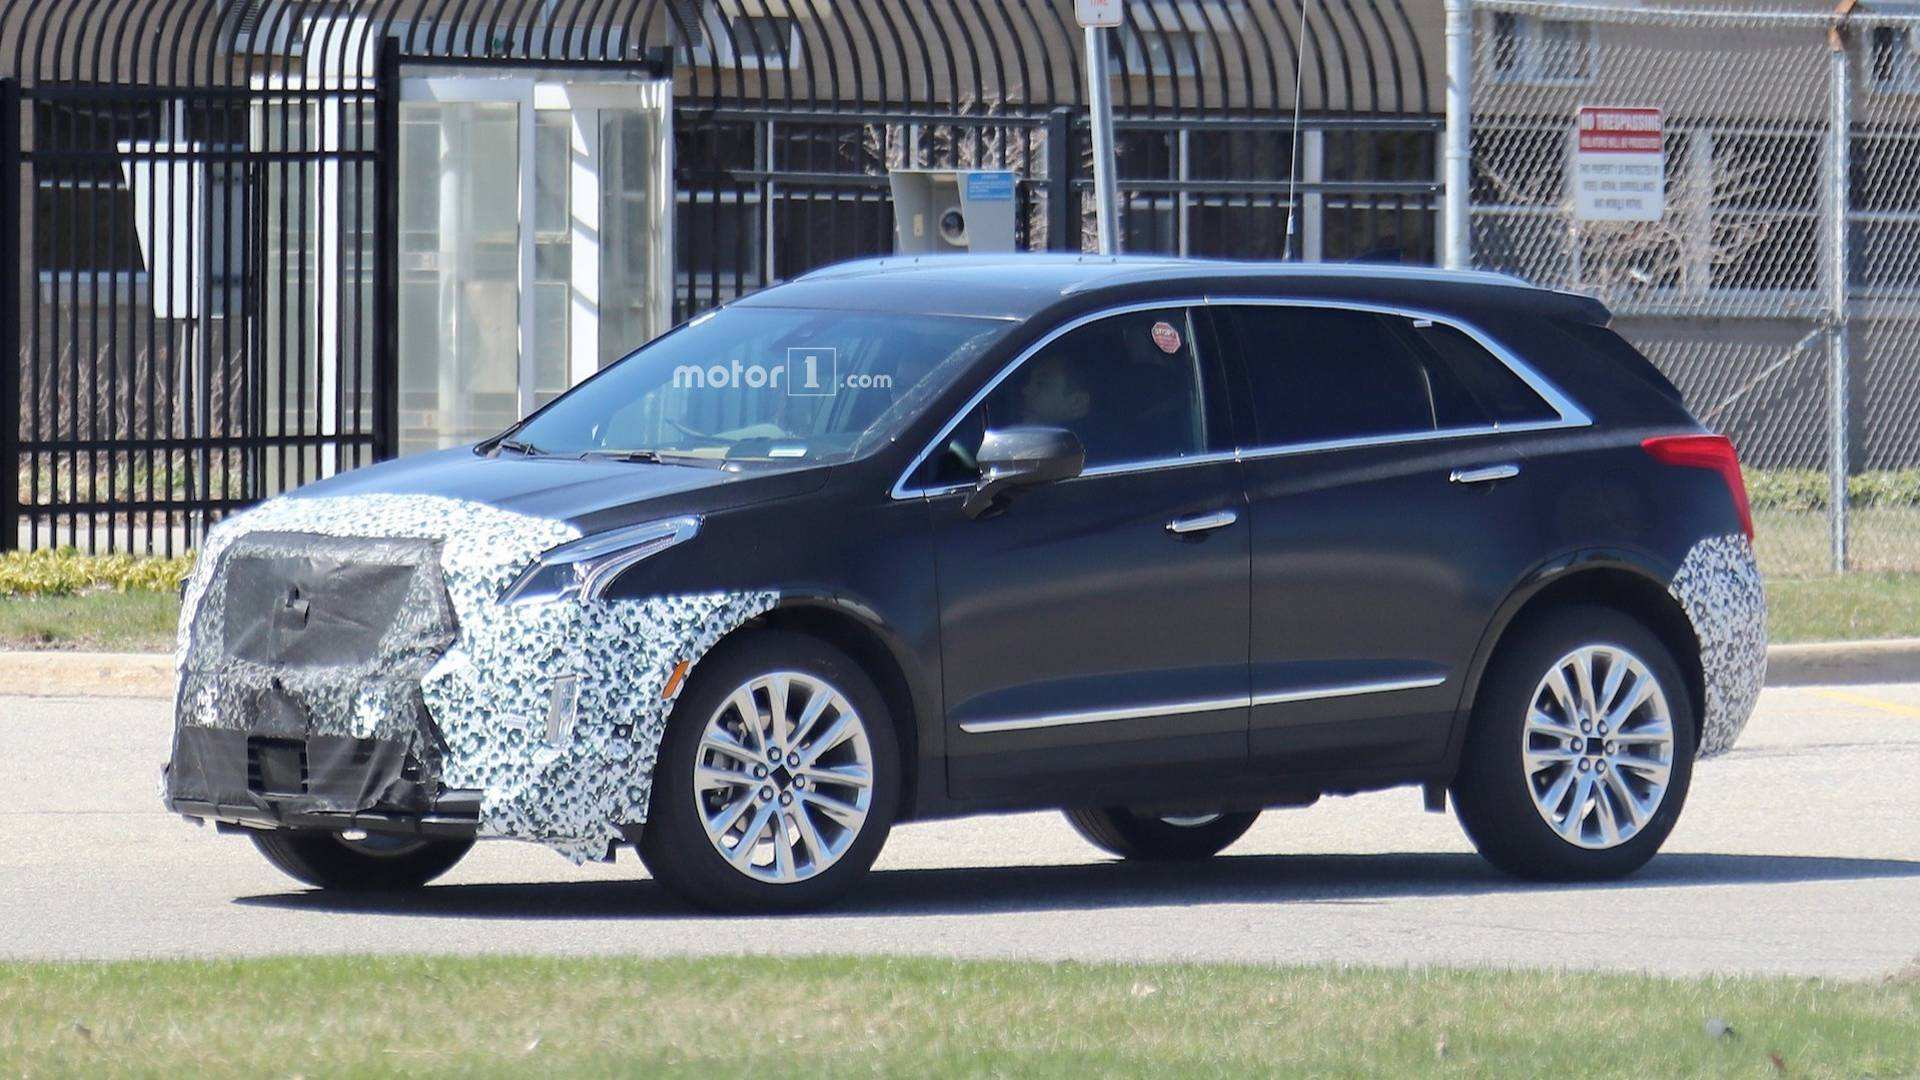 77 All New When Will The 2020 Cadillac Xt5 Be Available Ratings